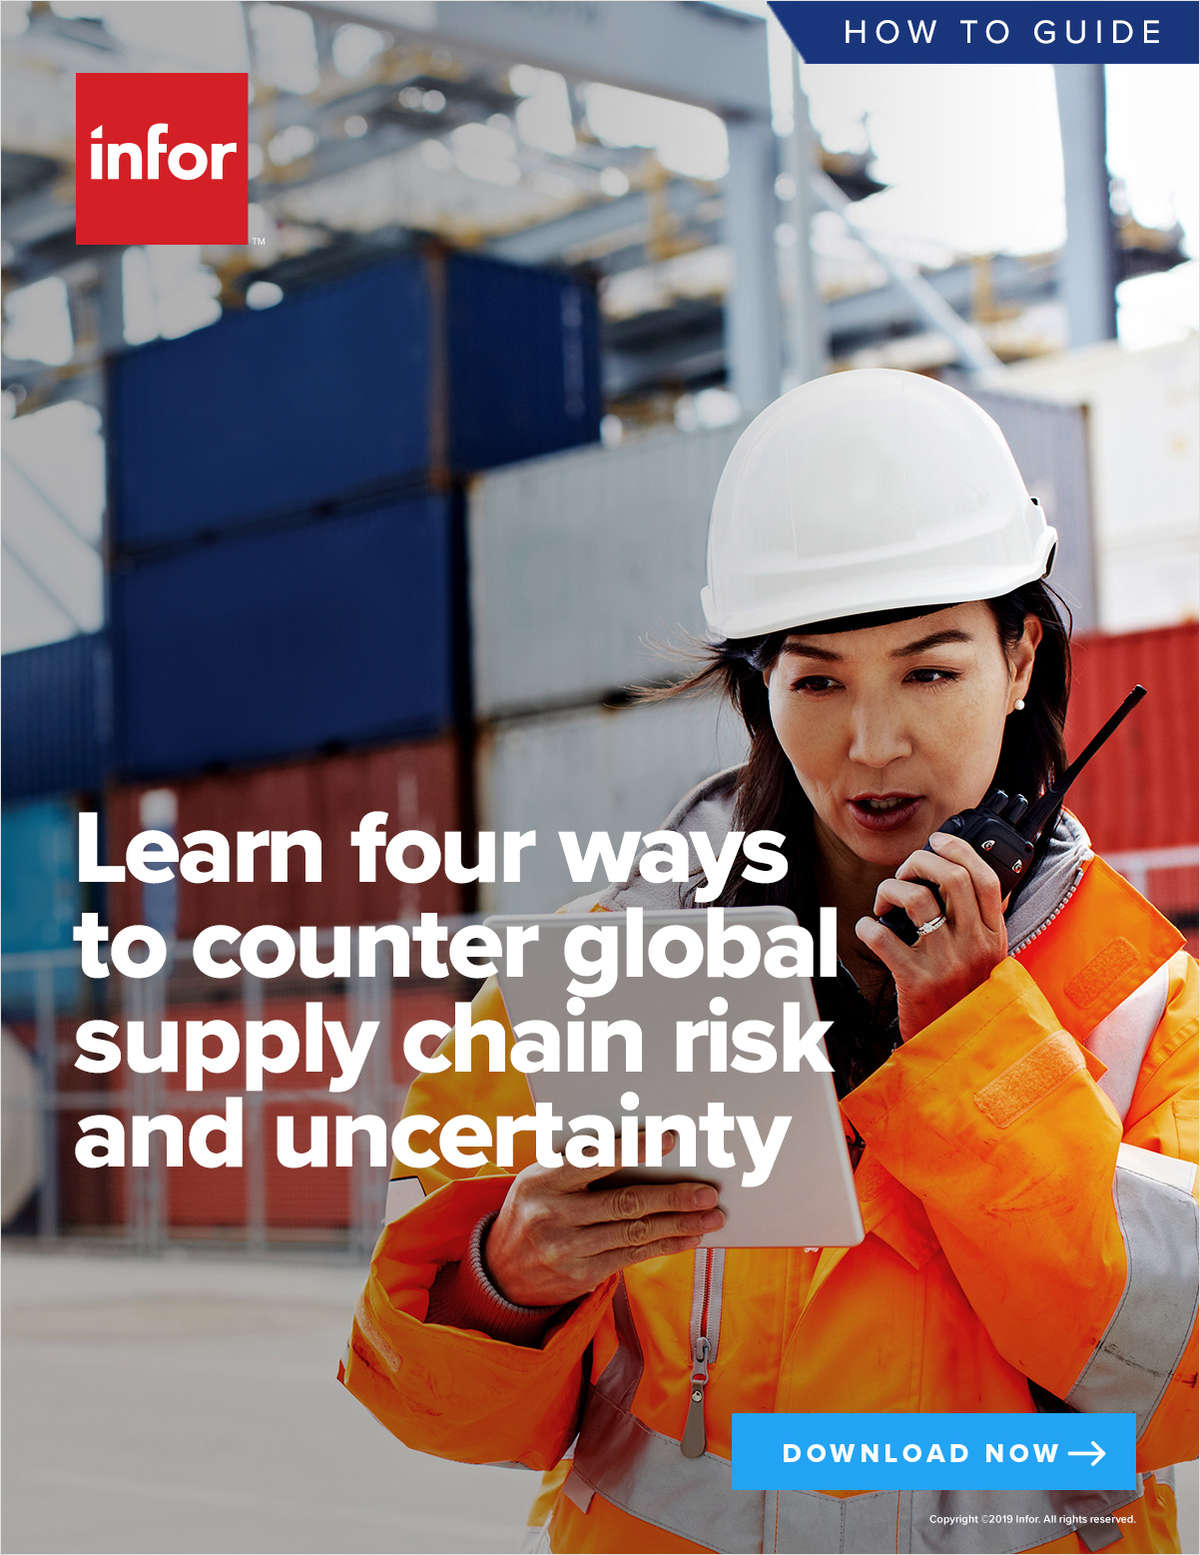 Four Ways to Counter Global Supply Chain Risk and Uncertainty